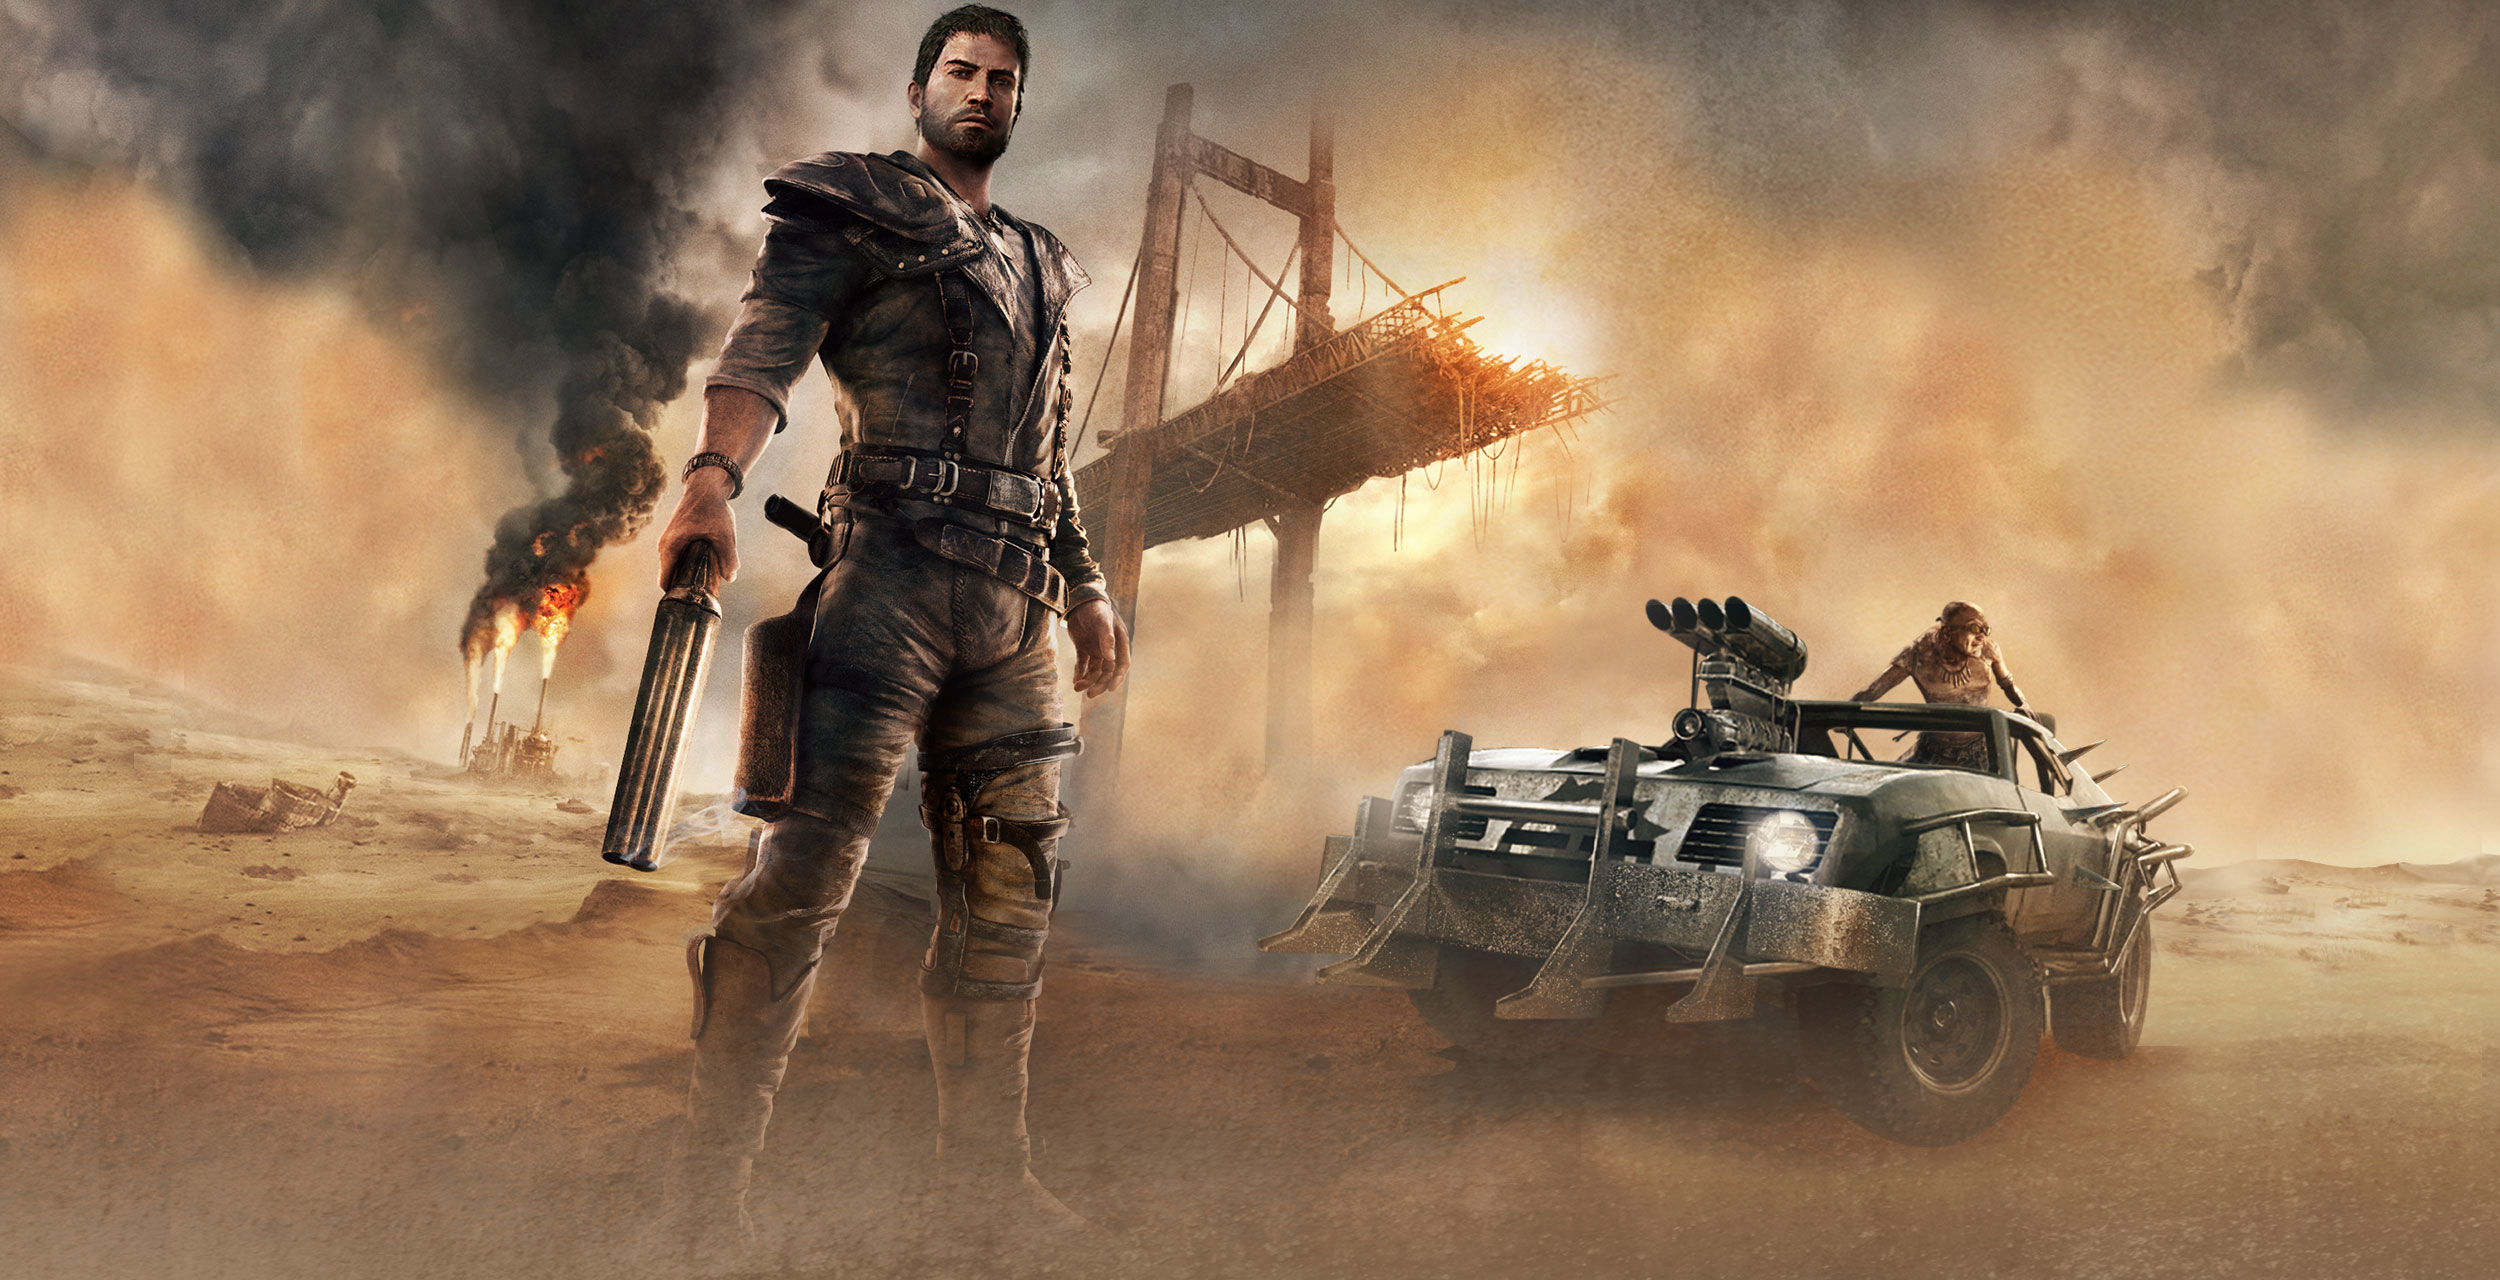 mad max game wallpapers high quality download free